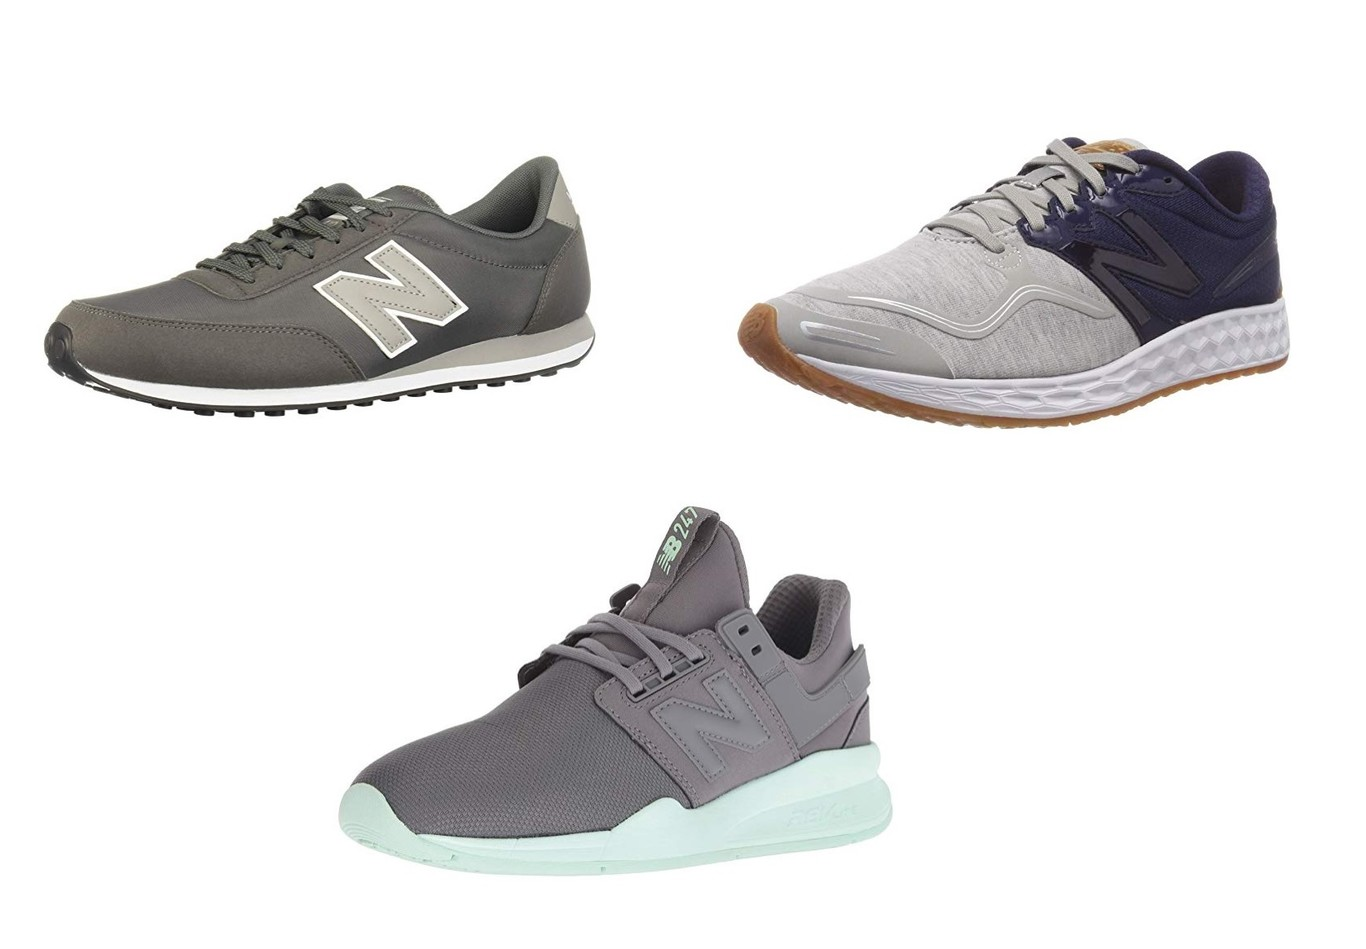 cheap for discount d38e7 be5f5 Chollos en tallas sueltas de zapatillas New Balance en Amazon